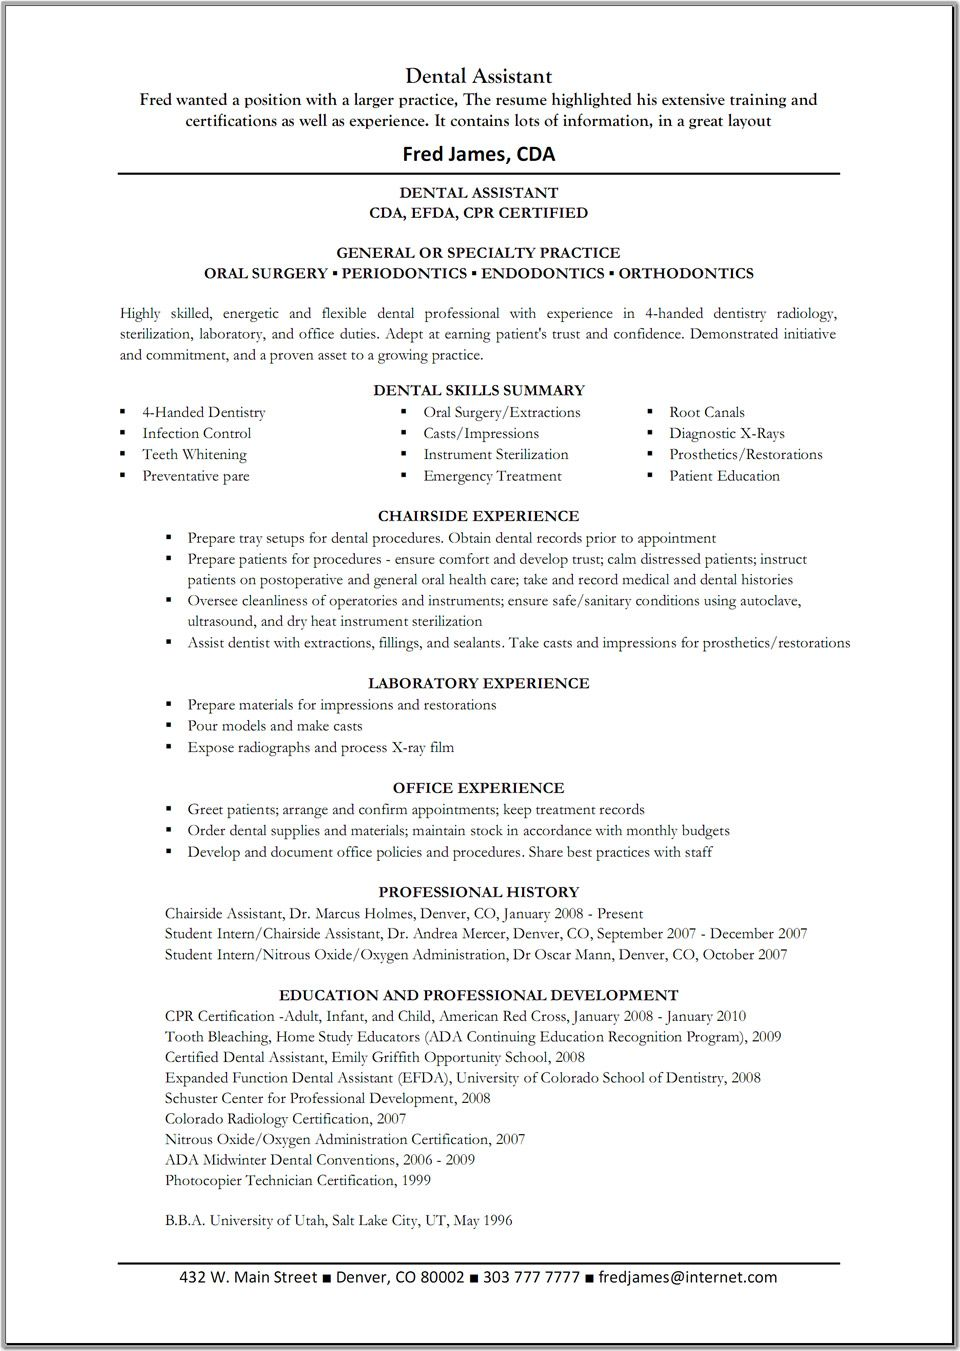 Gentil Dental Assistant Resume Template | Great Resume Templates